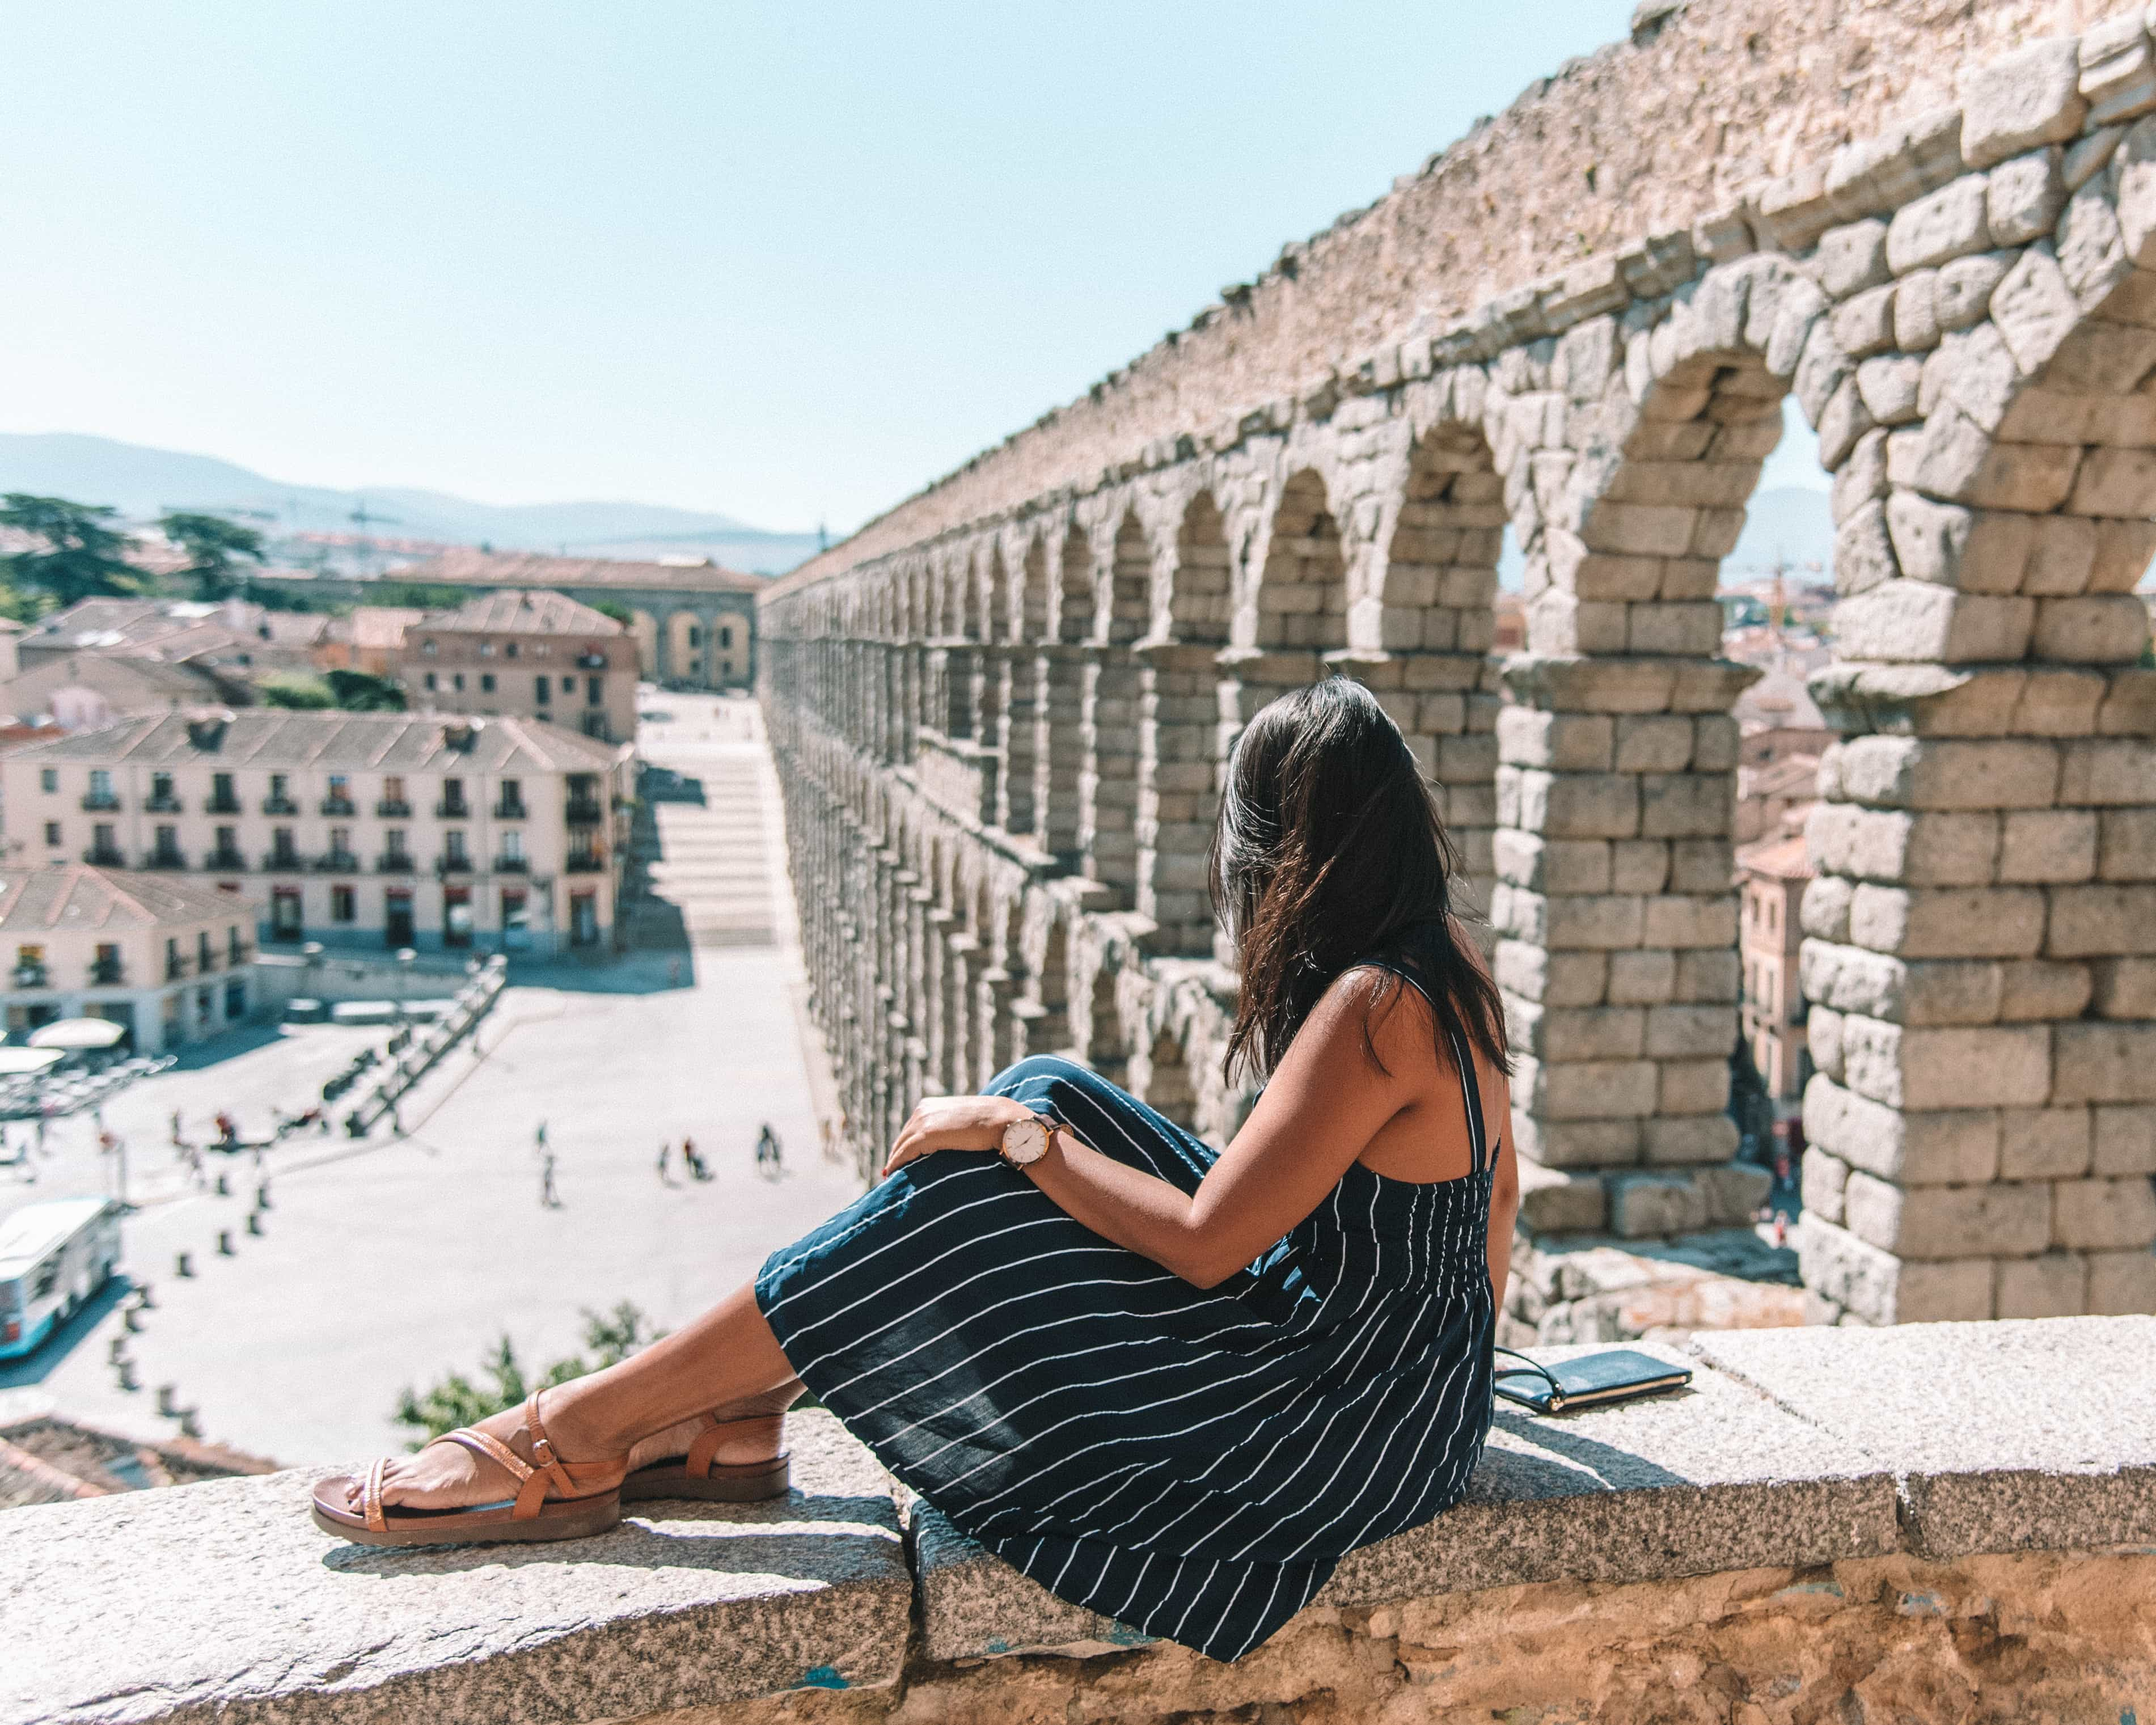 Travel Guide to Segovia: Things to do in Segovia, best time to visit Segovia, day tour from Madrid to Segovia, food to try in Segovia, eat cochinillo in Segovia